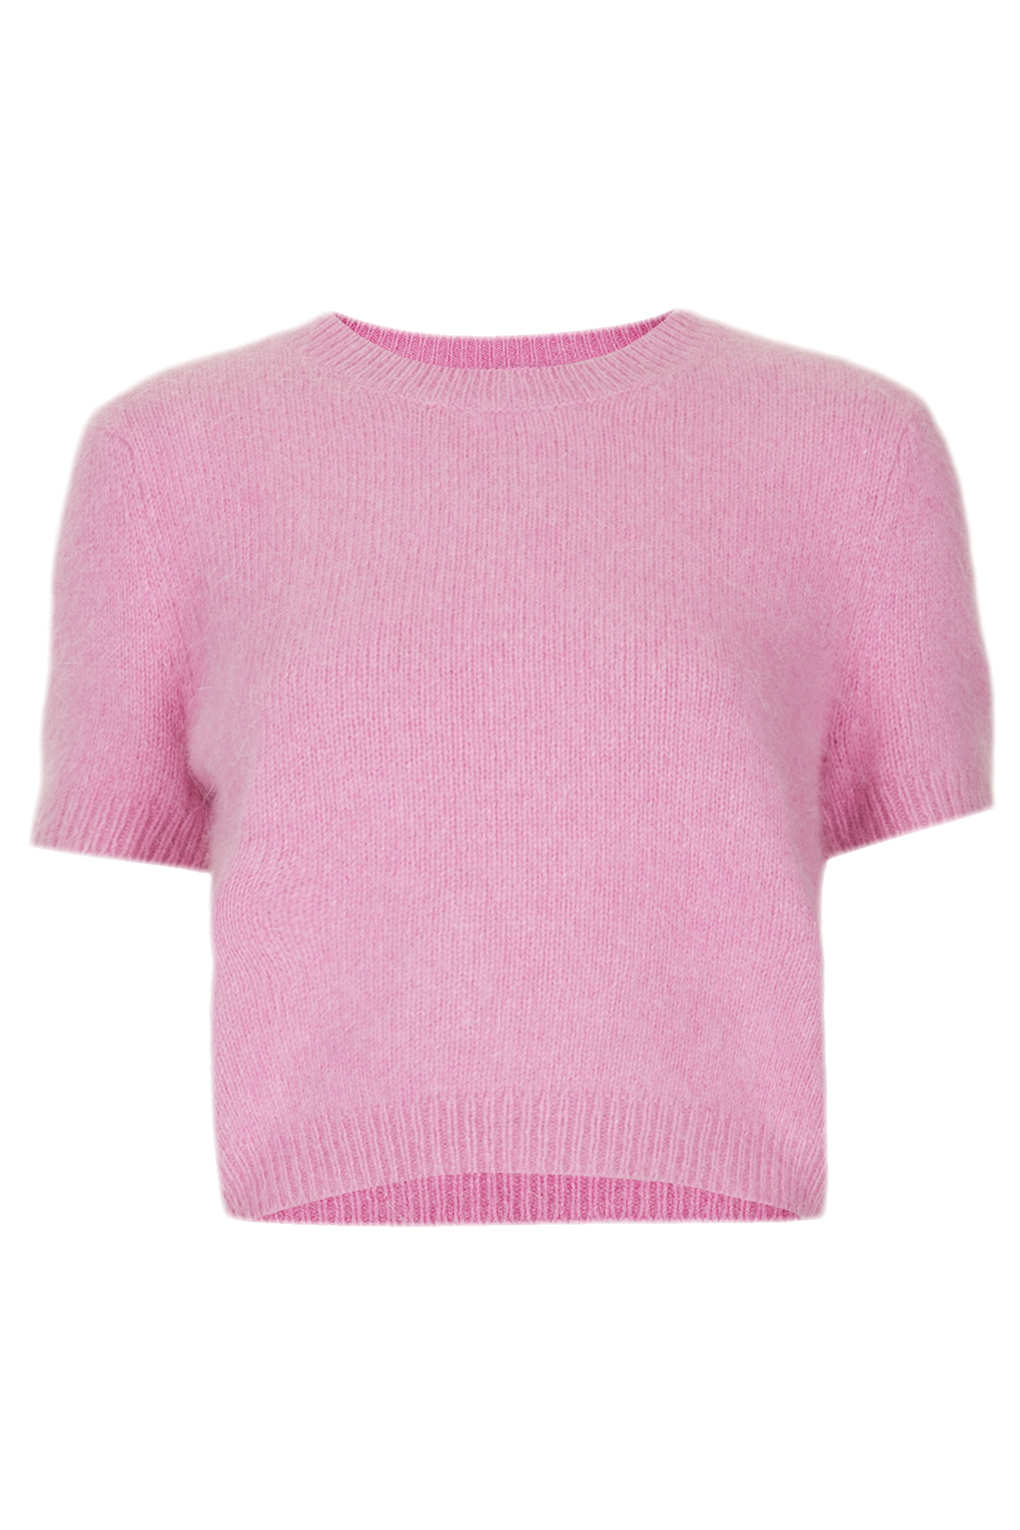 Knitting Pattern Fluffy Jumper : Topshop Knitted Fluffy Angora Jumper in Pink Lyst